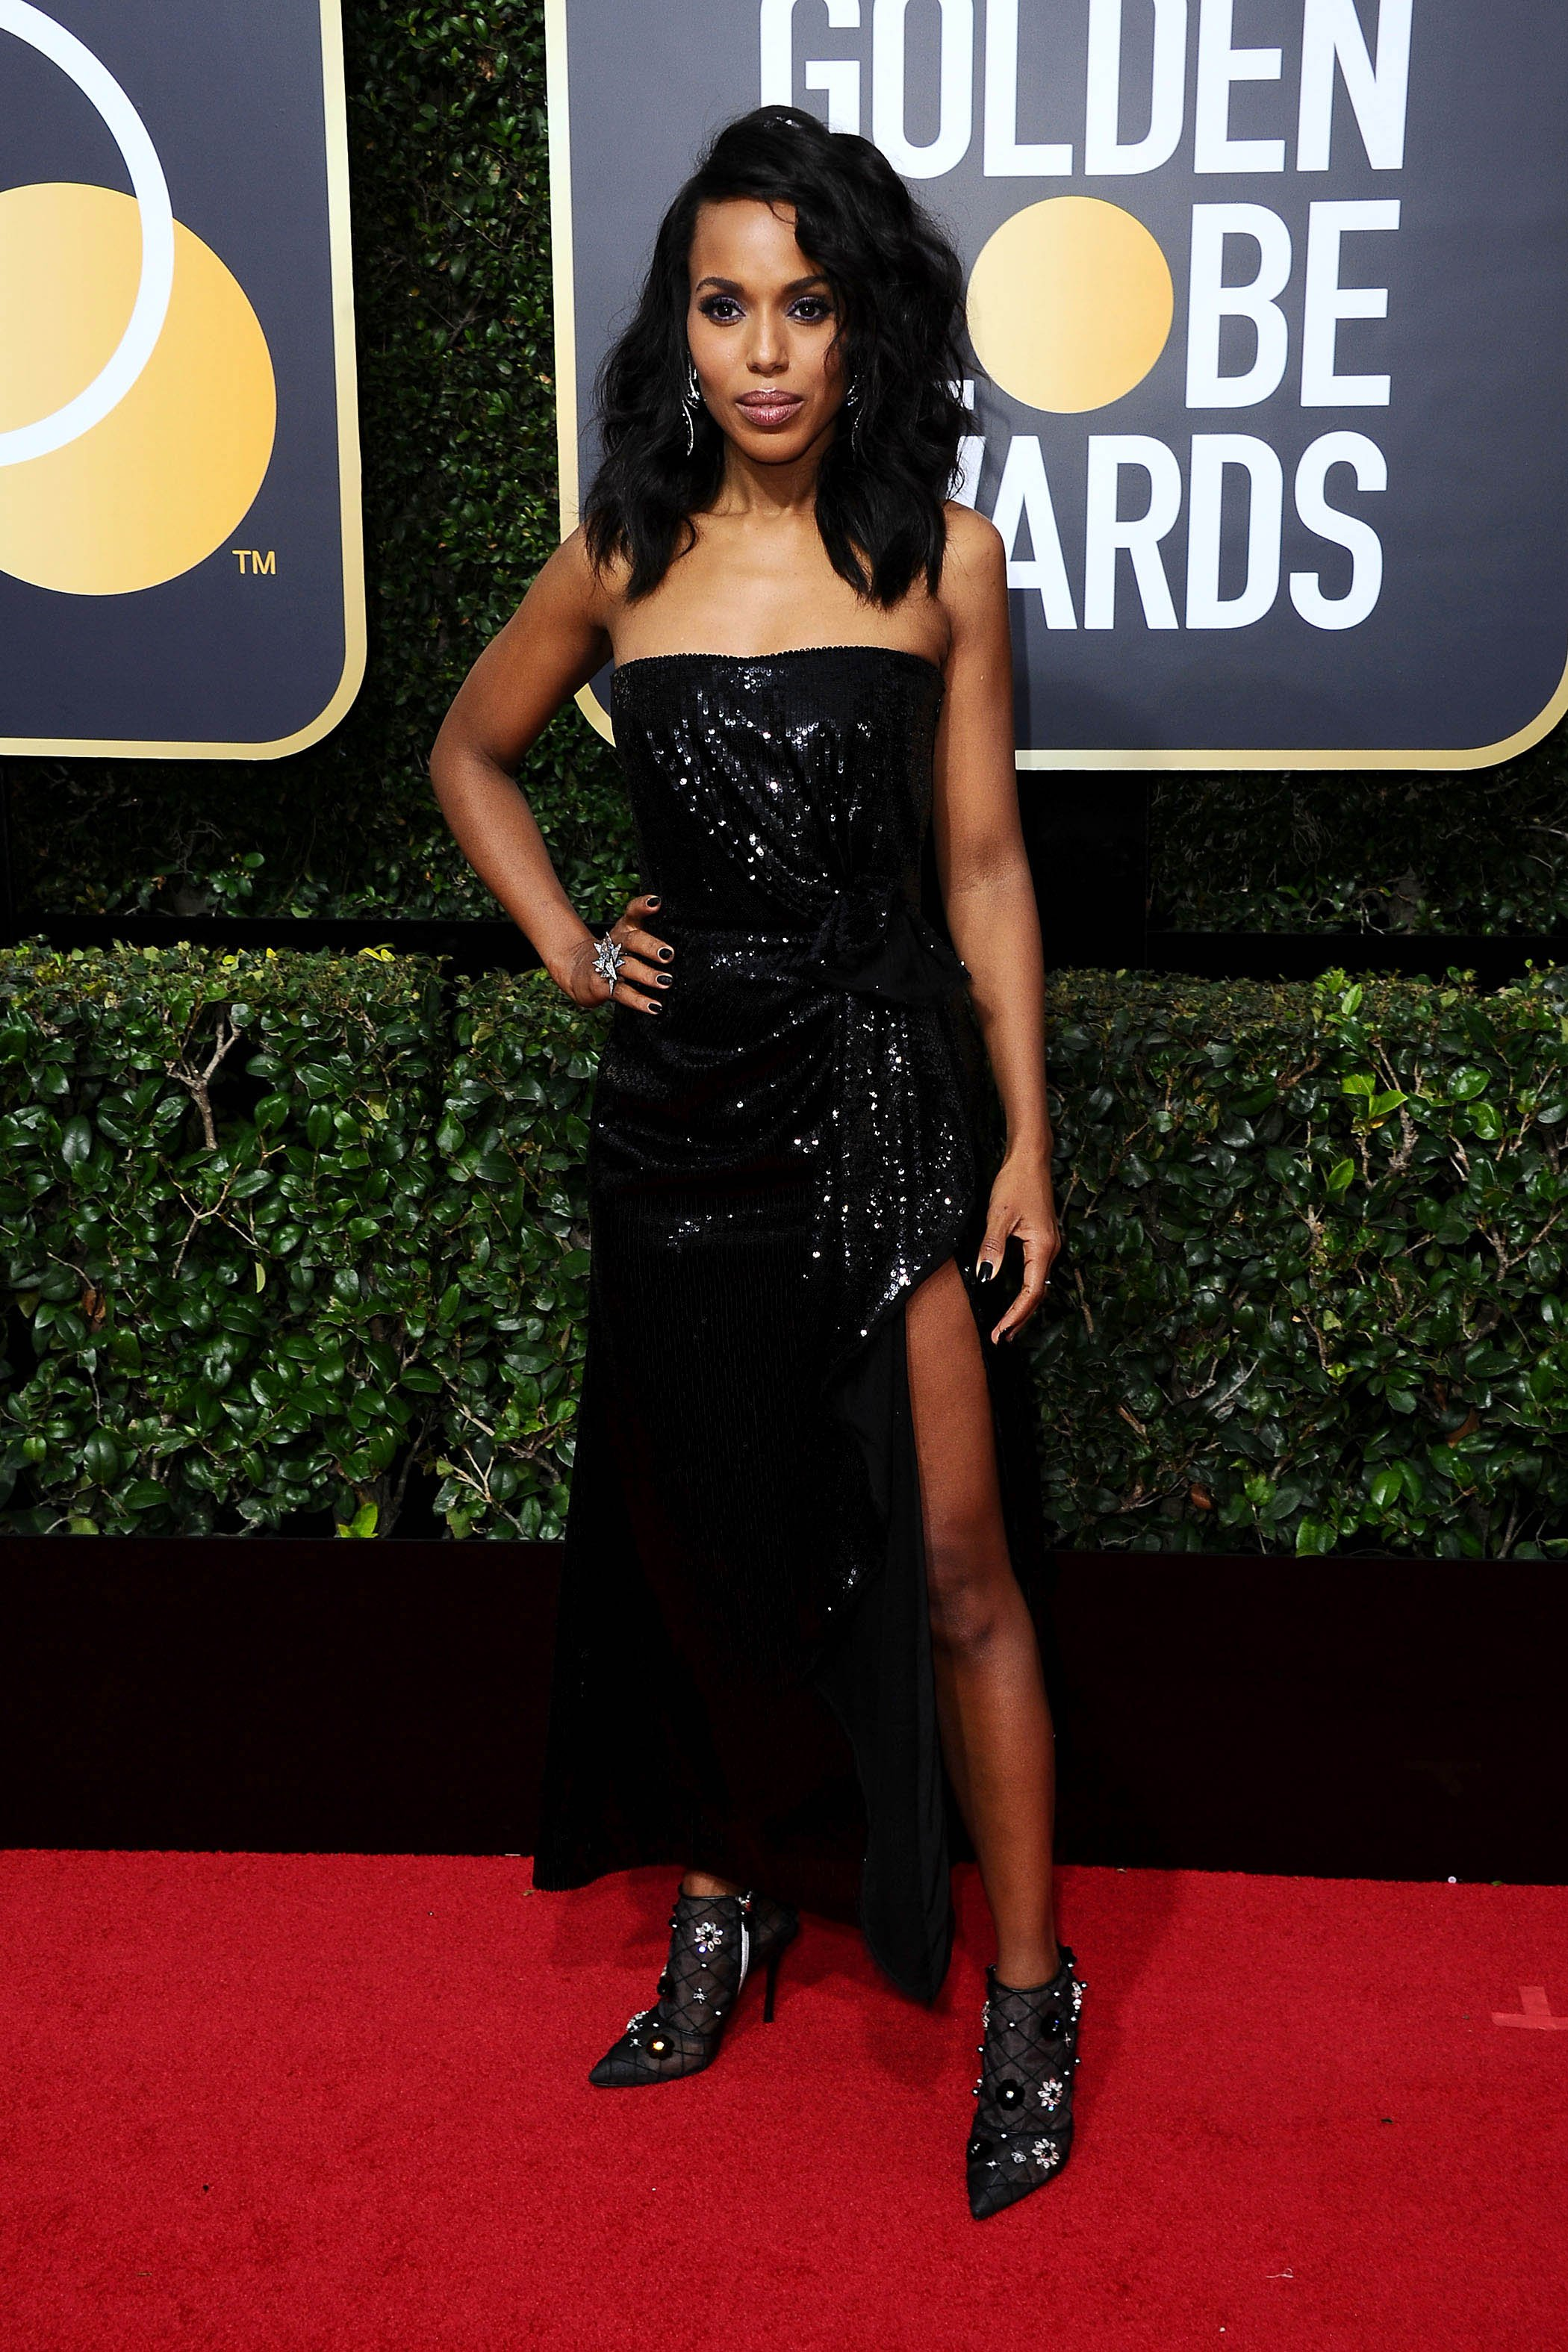 , Beverly Hills, CA -20180107 - The 75th Golden Globe Awards - Arrivals at The Beverly Hilton  -PICTURED: Kerry Washington -, Image: 359496173, License: Rights-managed, Restrictions: , Model Release: no, Credit line: Profimedia, INSTAR Images